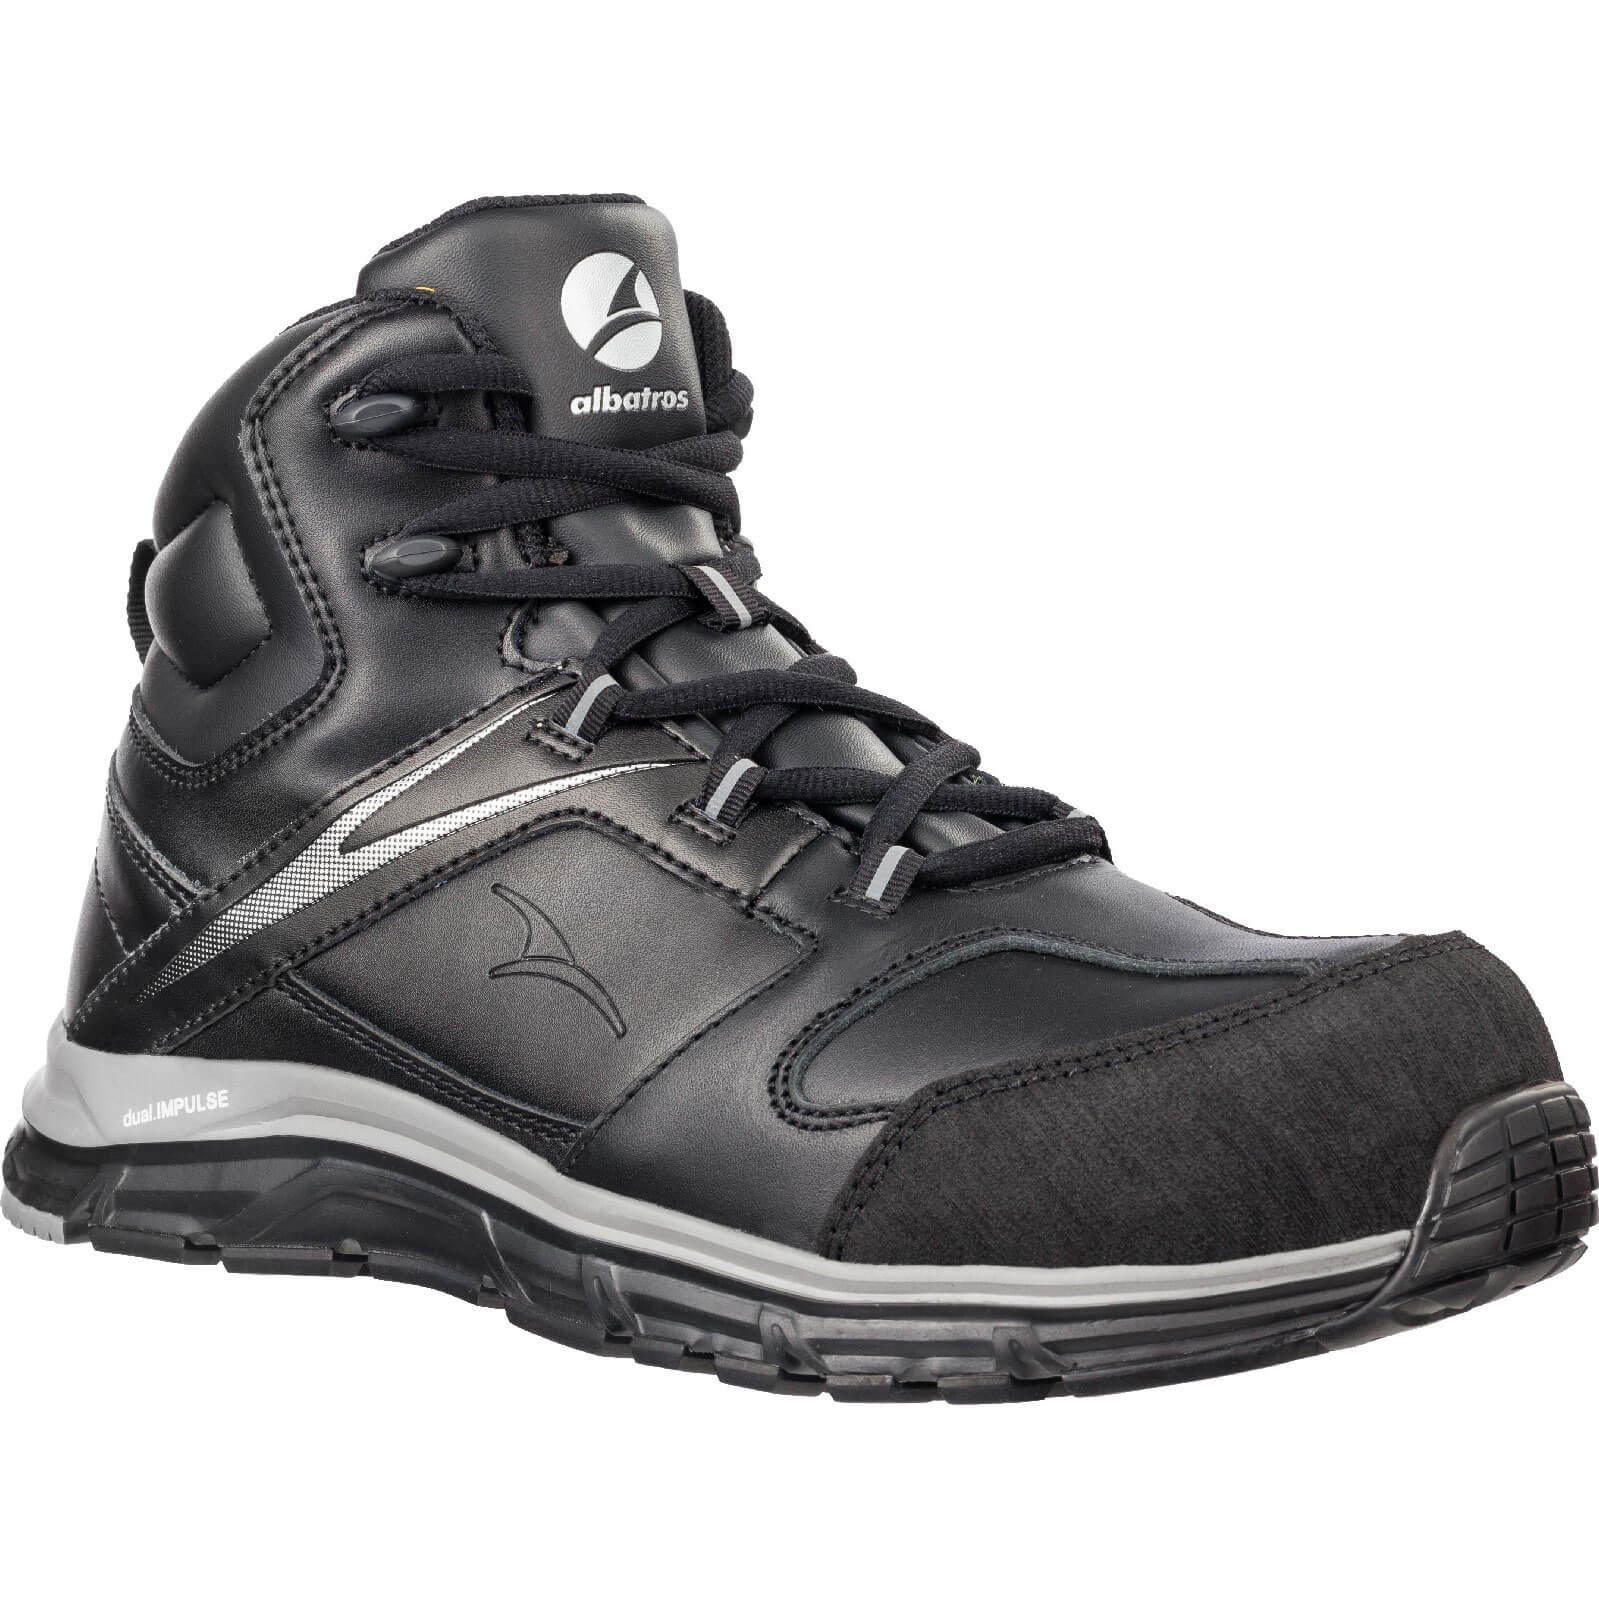 Image of Albatros Mens Vigor Impulse Mid Safety Boots Black Size 12